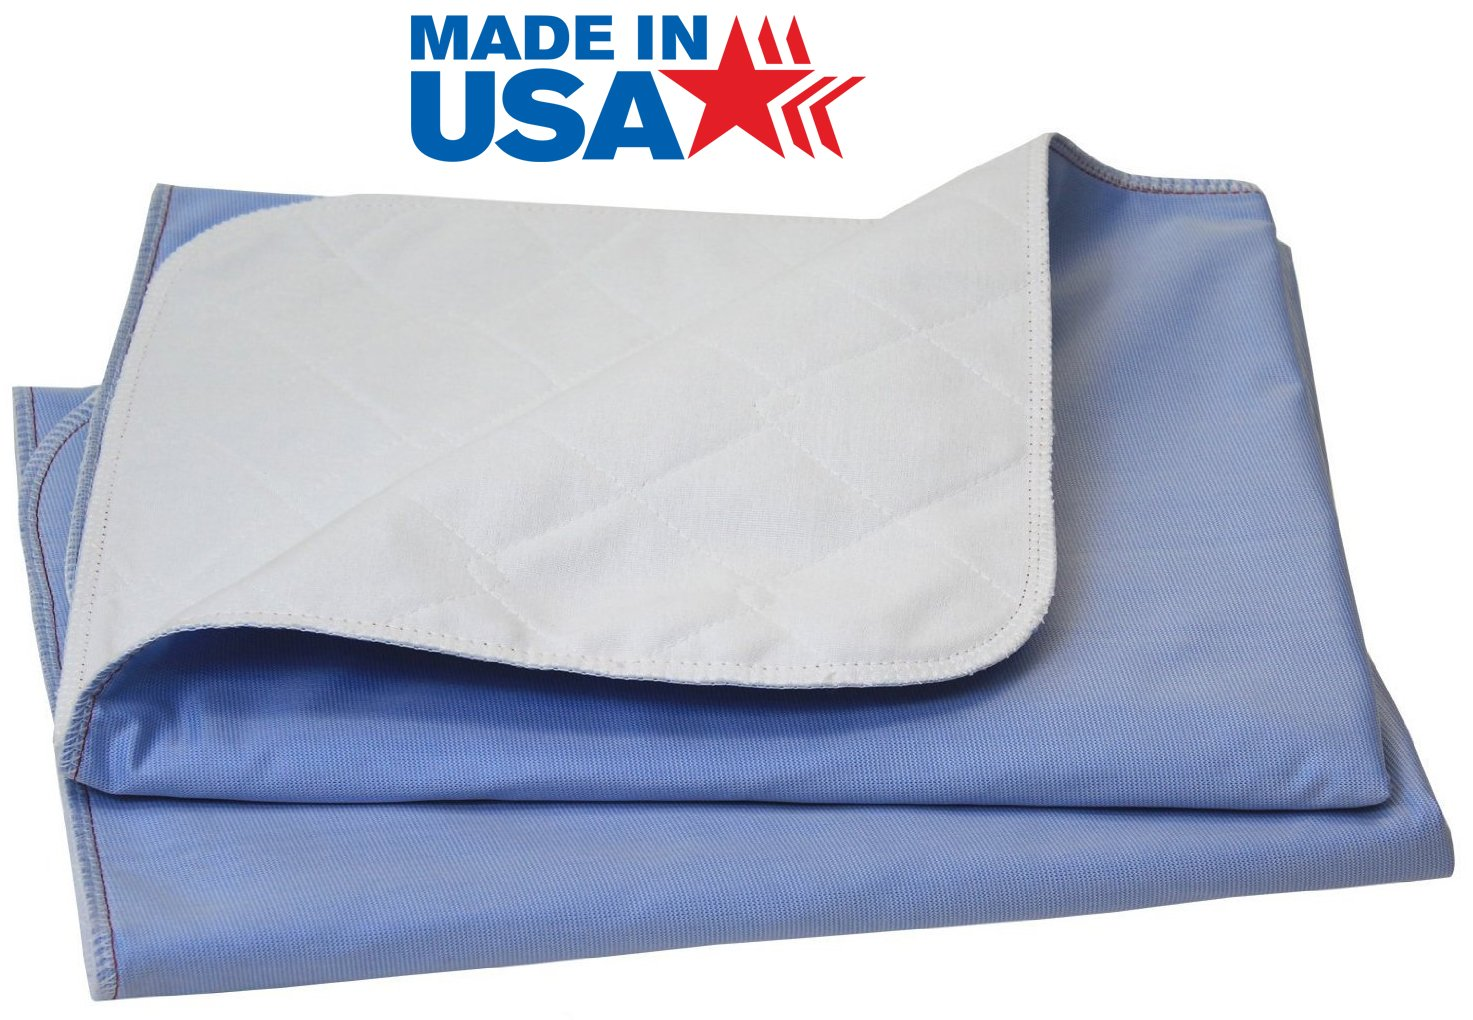 100% Cotton Big Size Washable Bed Pad / XXL Incontinence Underpad - 36 X 72 - Mattress Protector - Blue